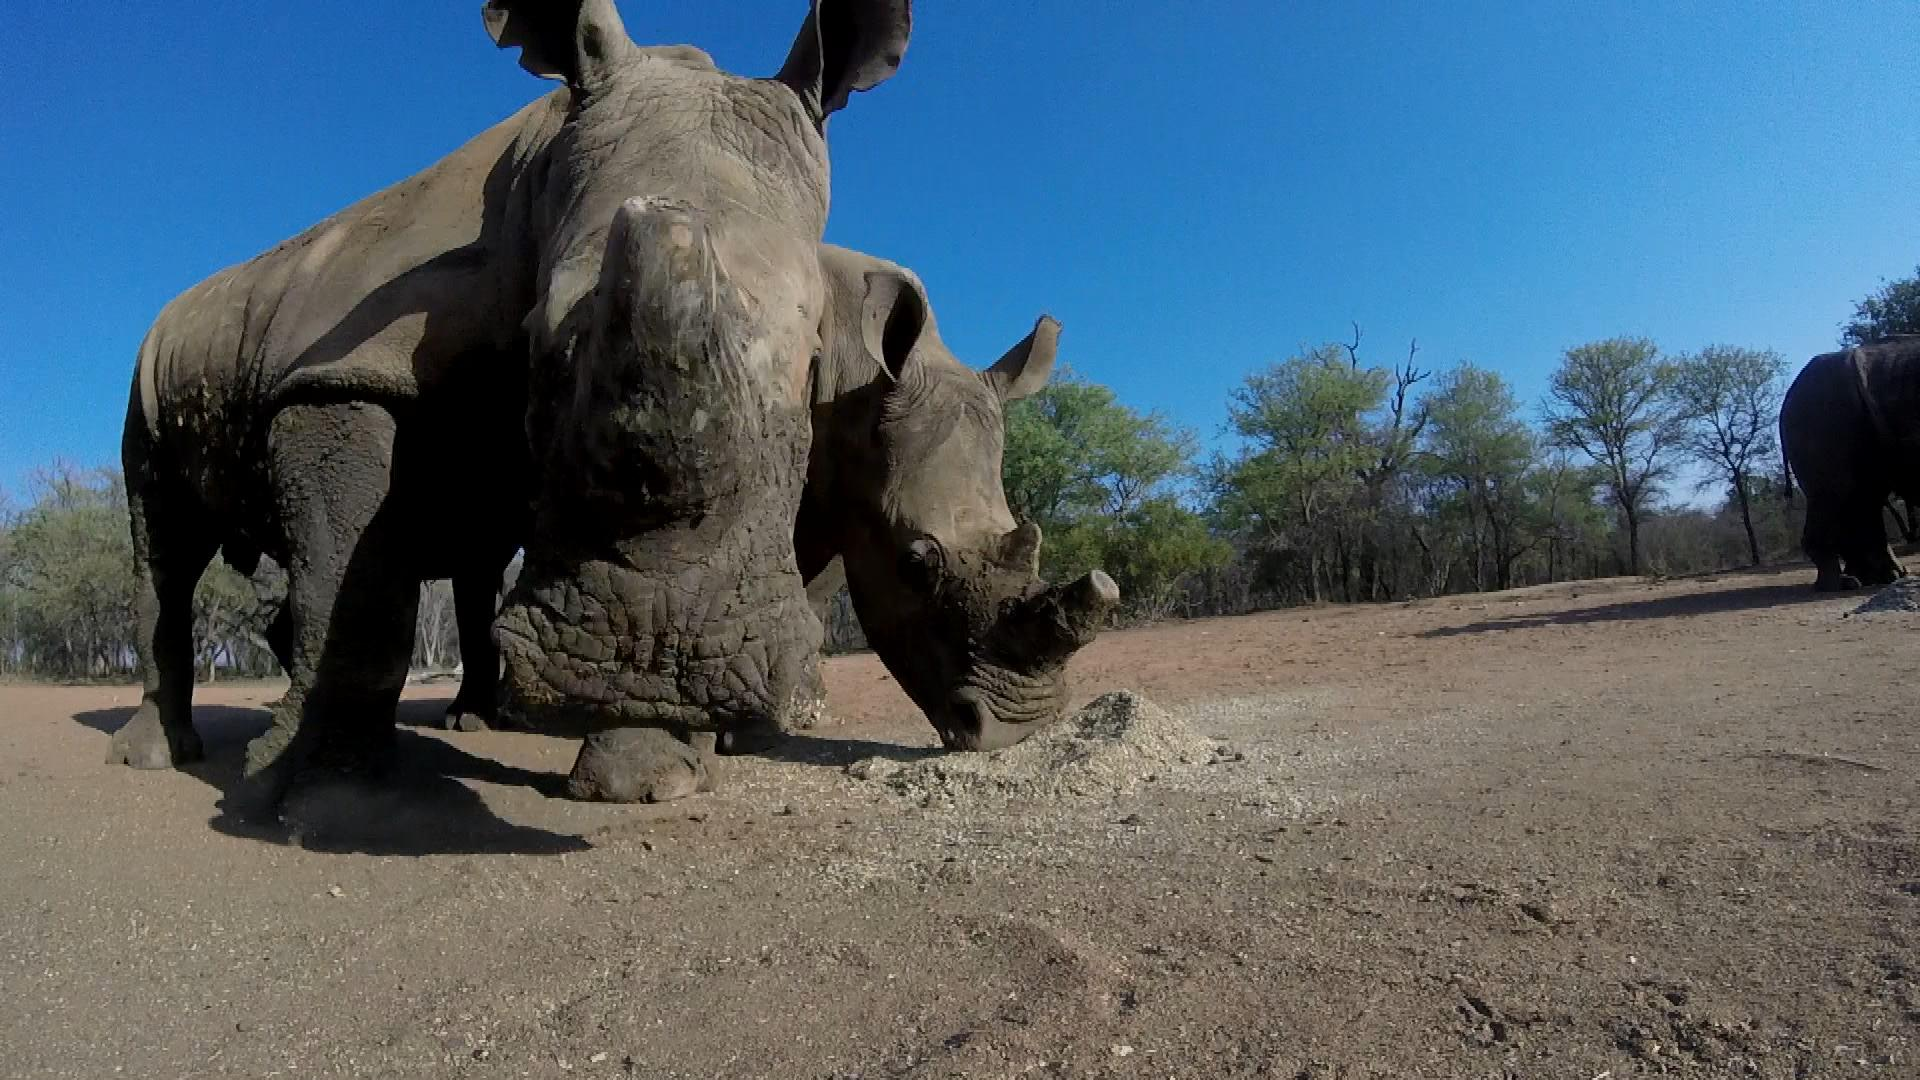 rhino wars An honour to appear in a picture, but of course very sad about the need to de-horn this rhino we all love rhinos much more with their horns unfortunately this poaching crisis forces humanity to re-think what conservation is about.